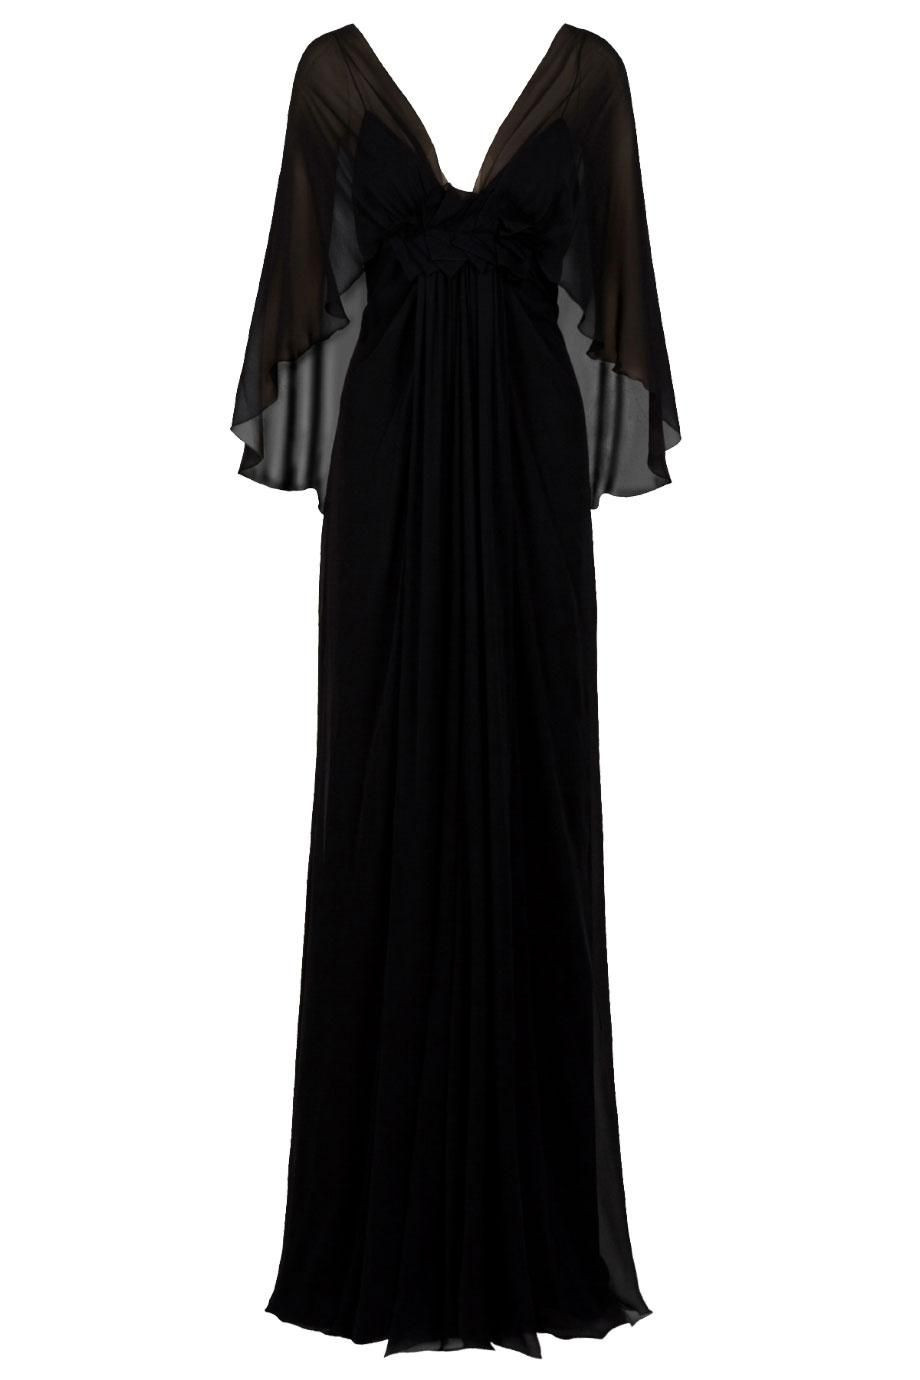 Elegant black caped sheath dress darkling pinterest black cape